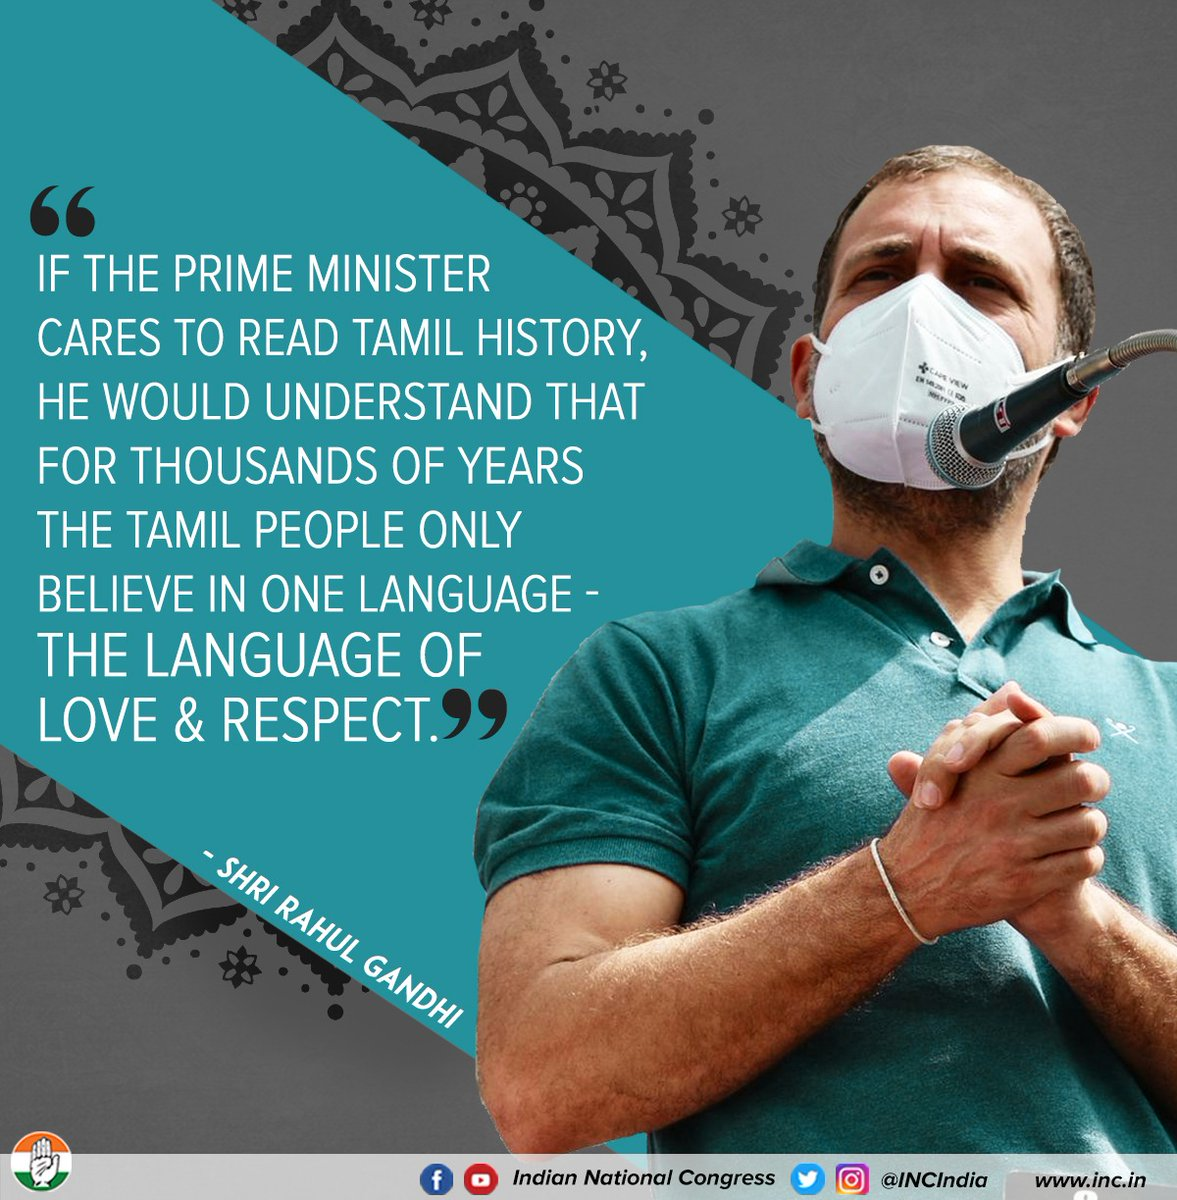 It's a shame the BJP does not speak the language of India: the language of love, respect & unity.